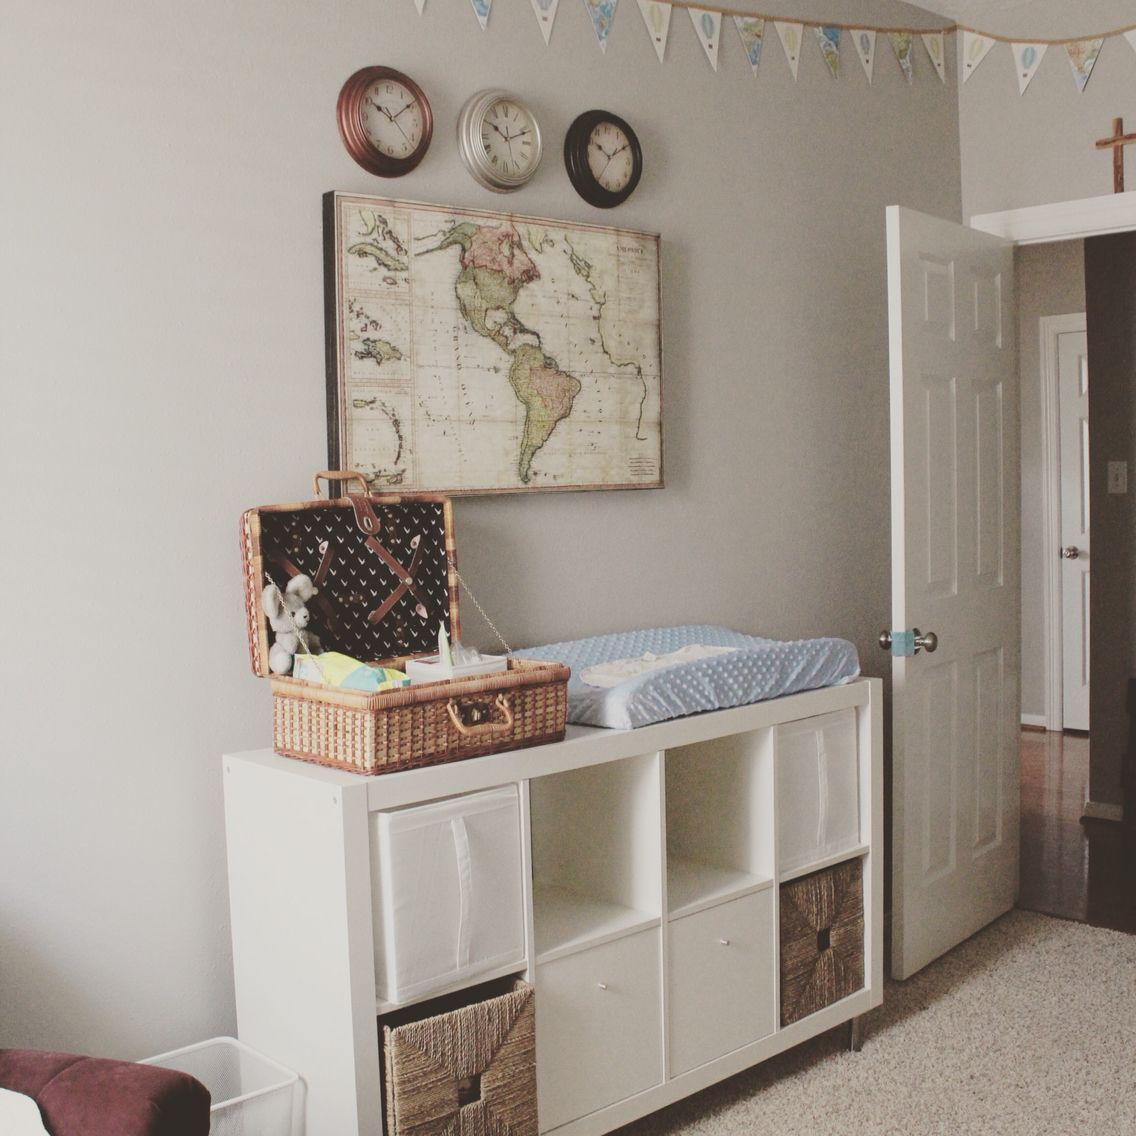 Themes For Baby Room: Baby Boy Nursery Travel And Mission Theme